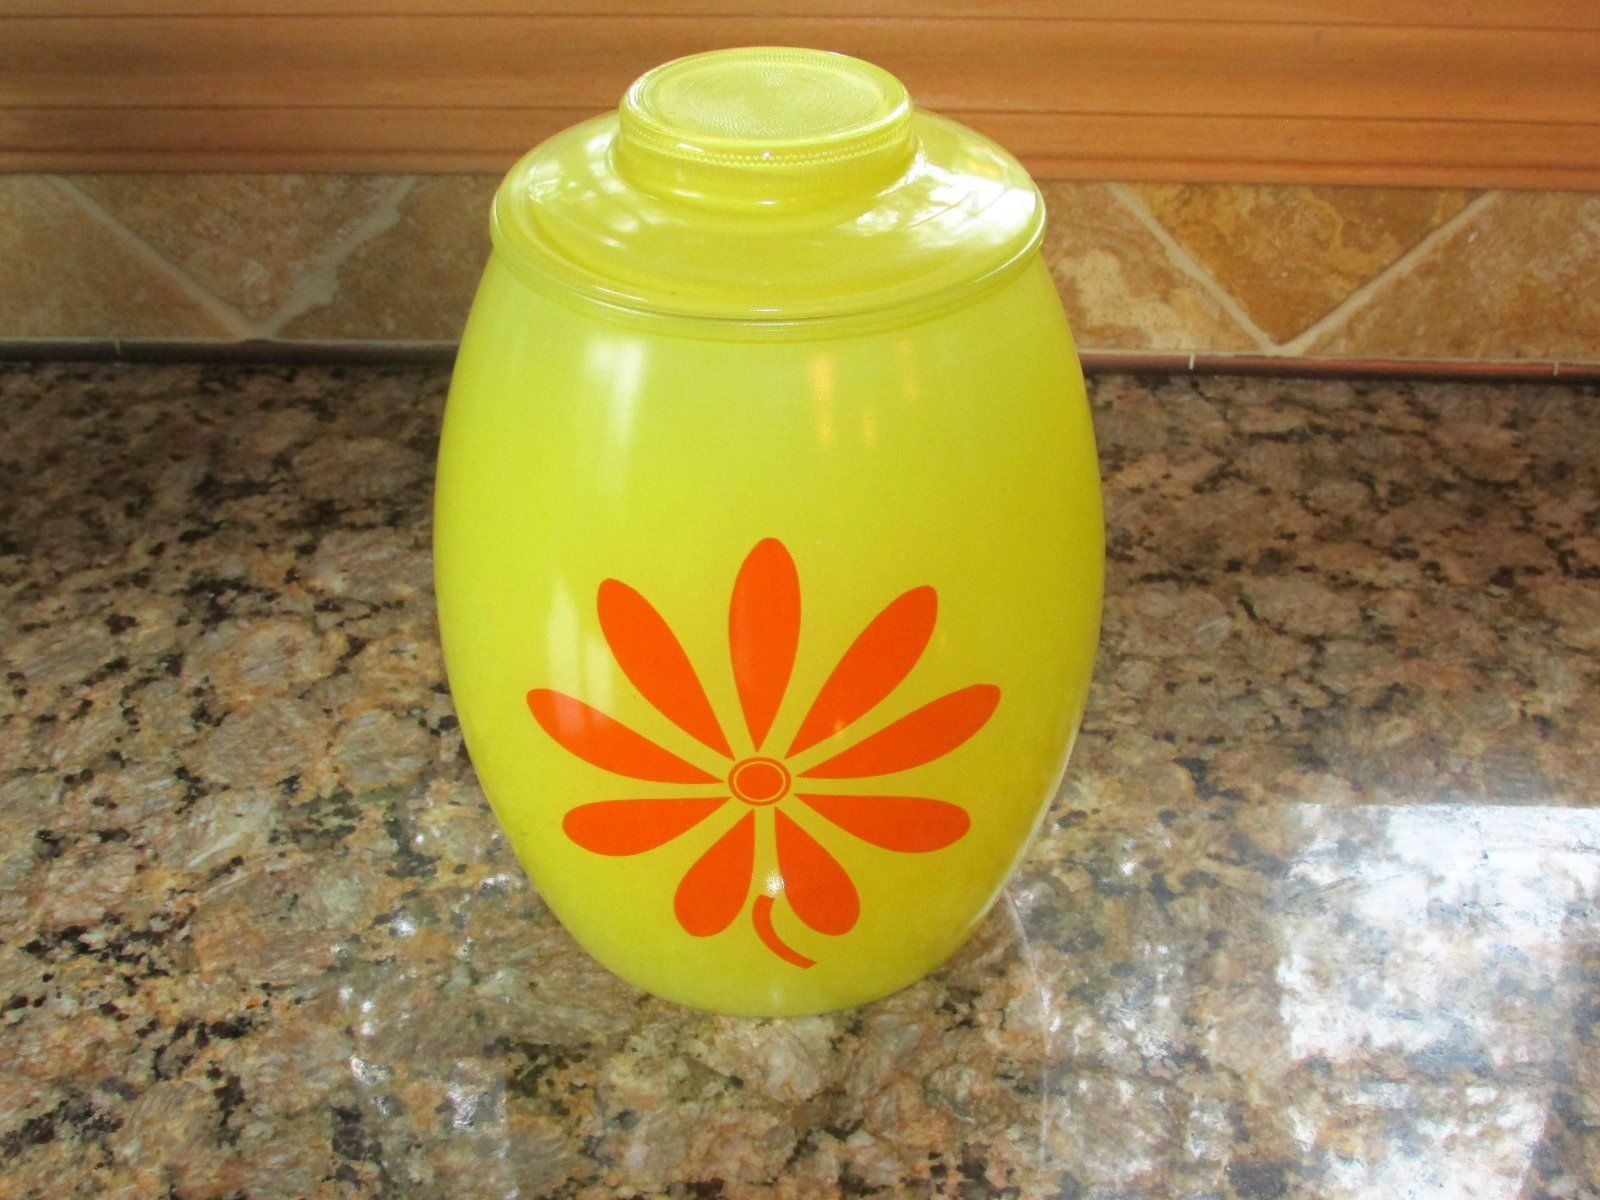 bartlett-collins-yellow-flower-cookie-jar